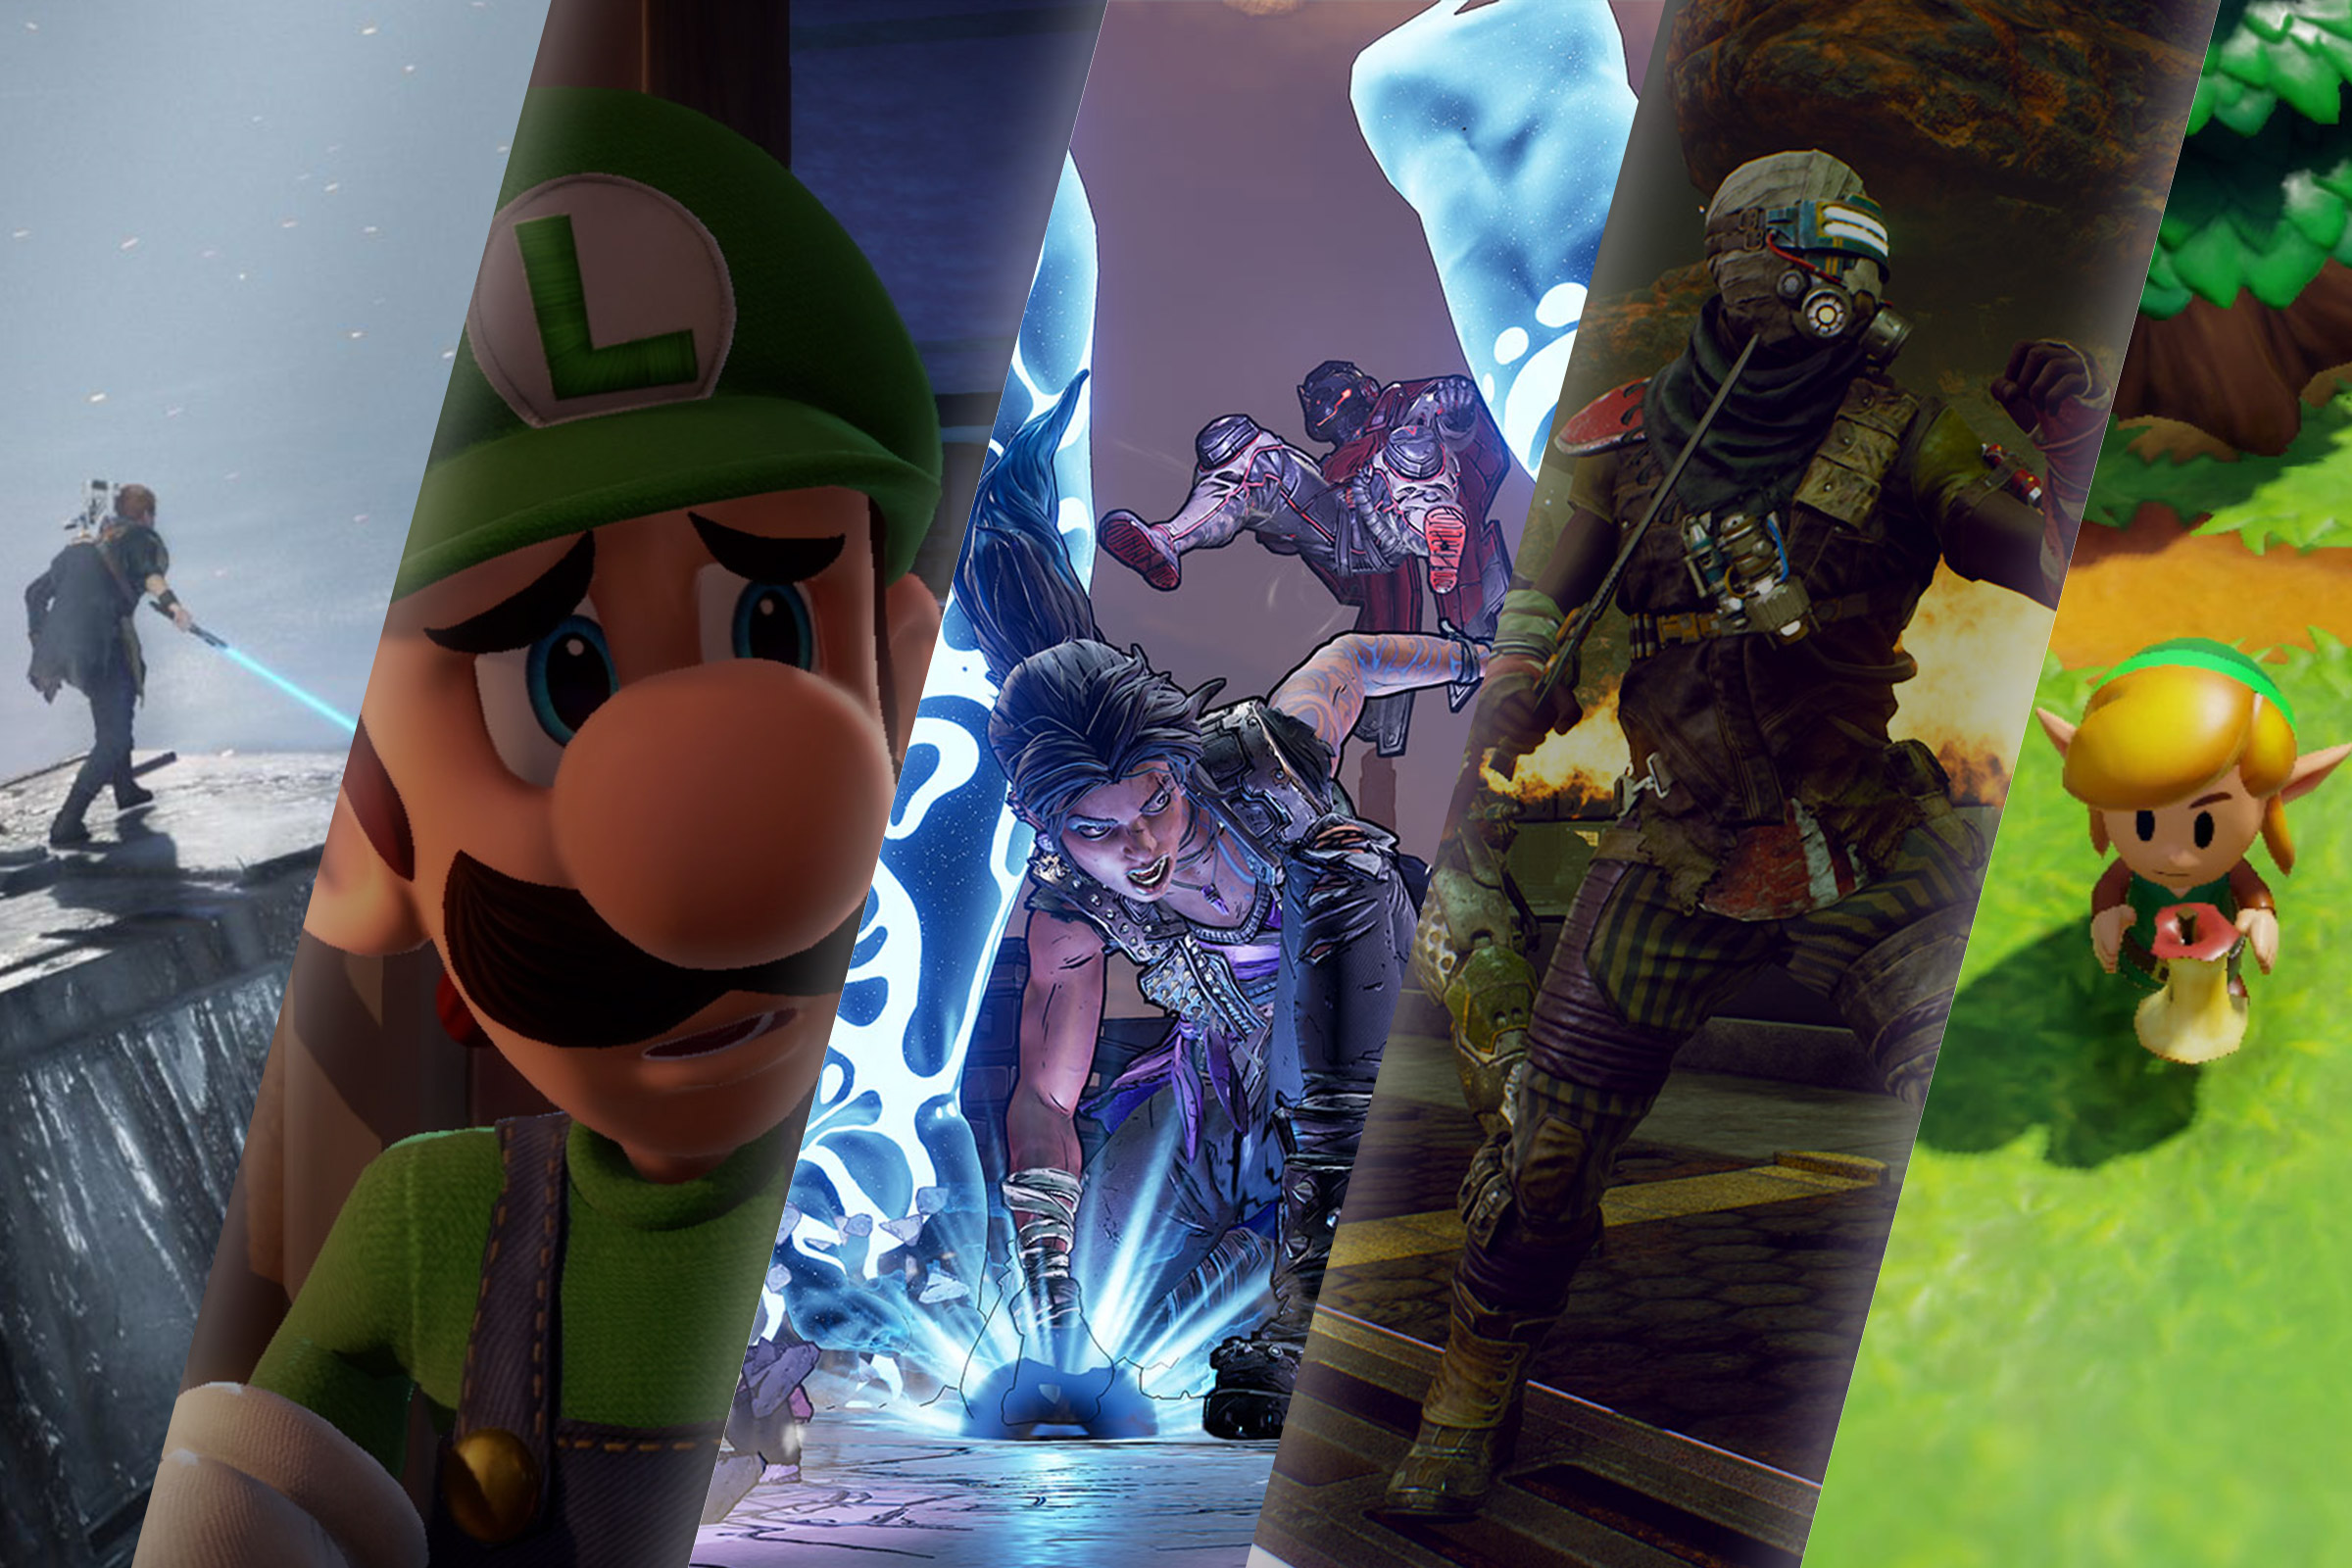 Star Wars Jedi: Fallen Order; Luigi's Mansion 3; Borderlands 3; The Outer Worlds; The Legend of Zelda: Link's Awakening